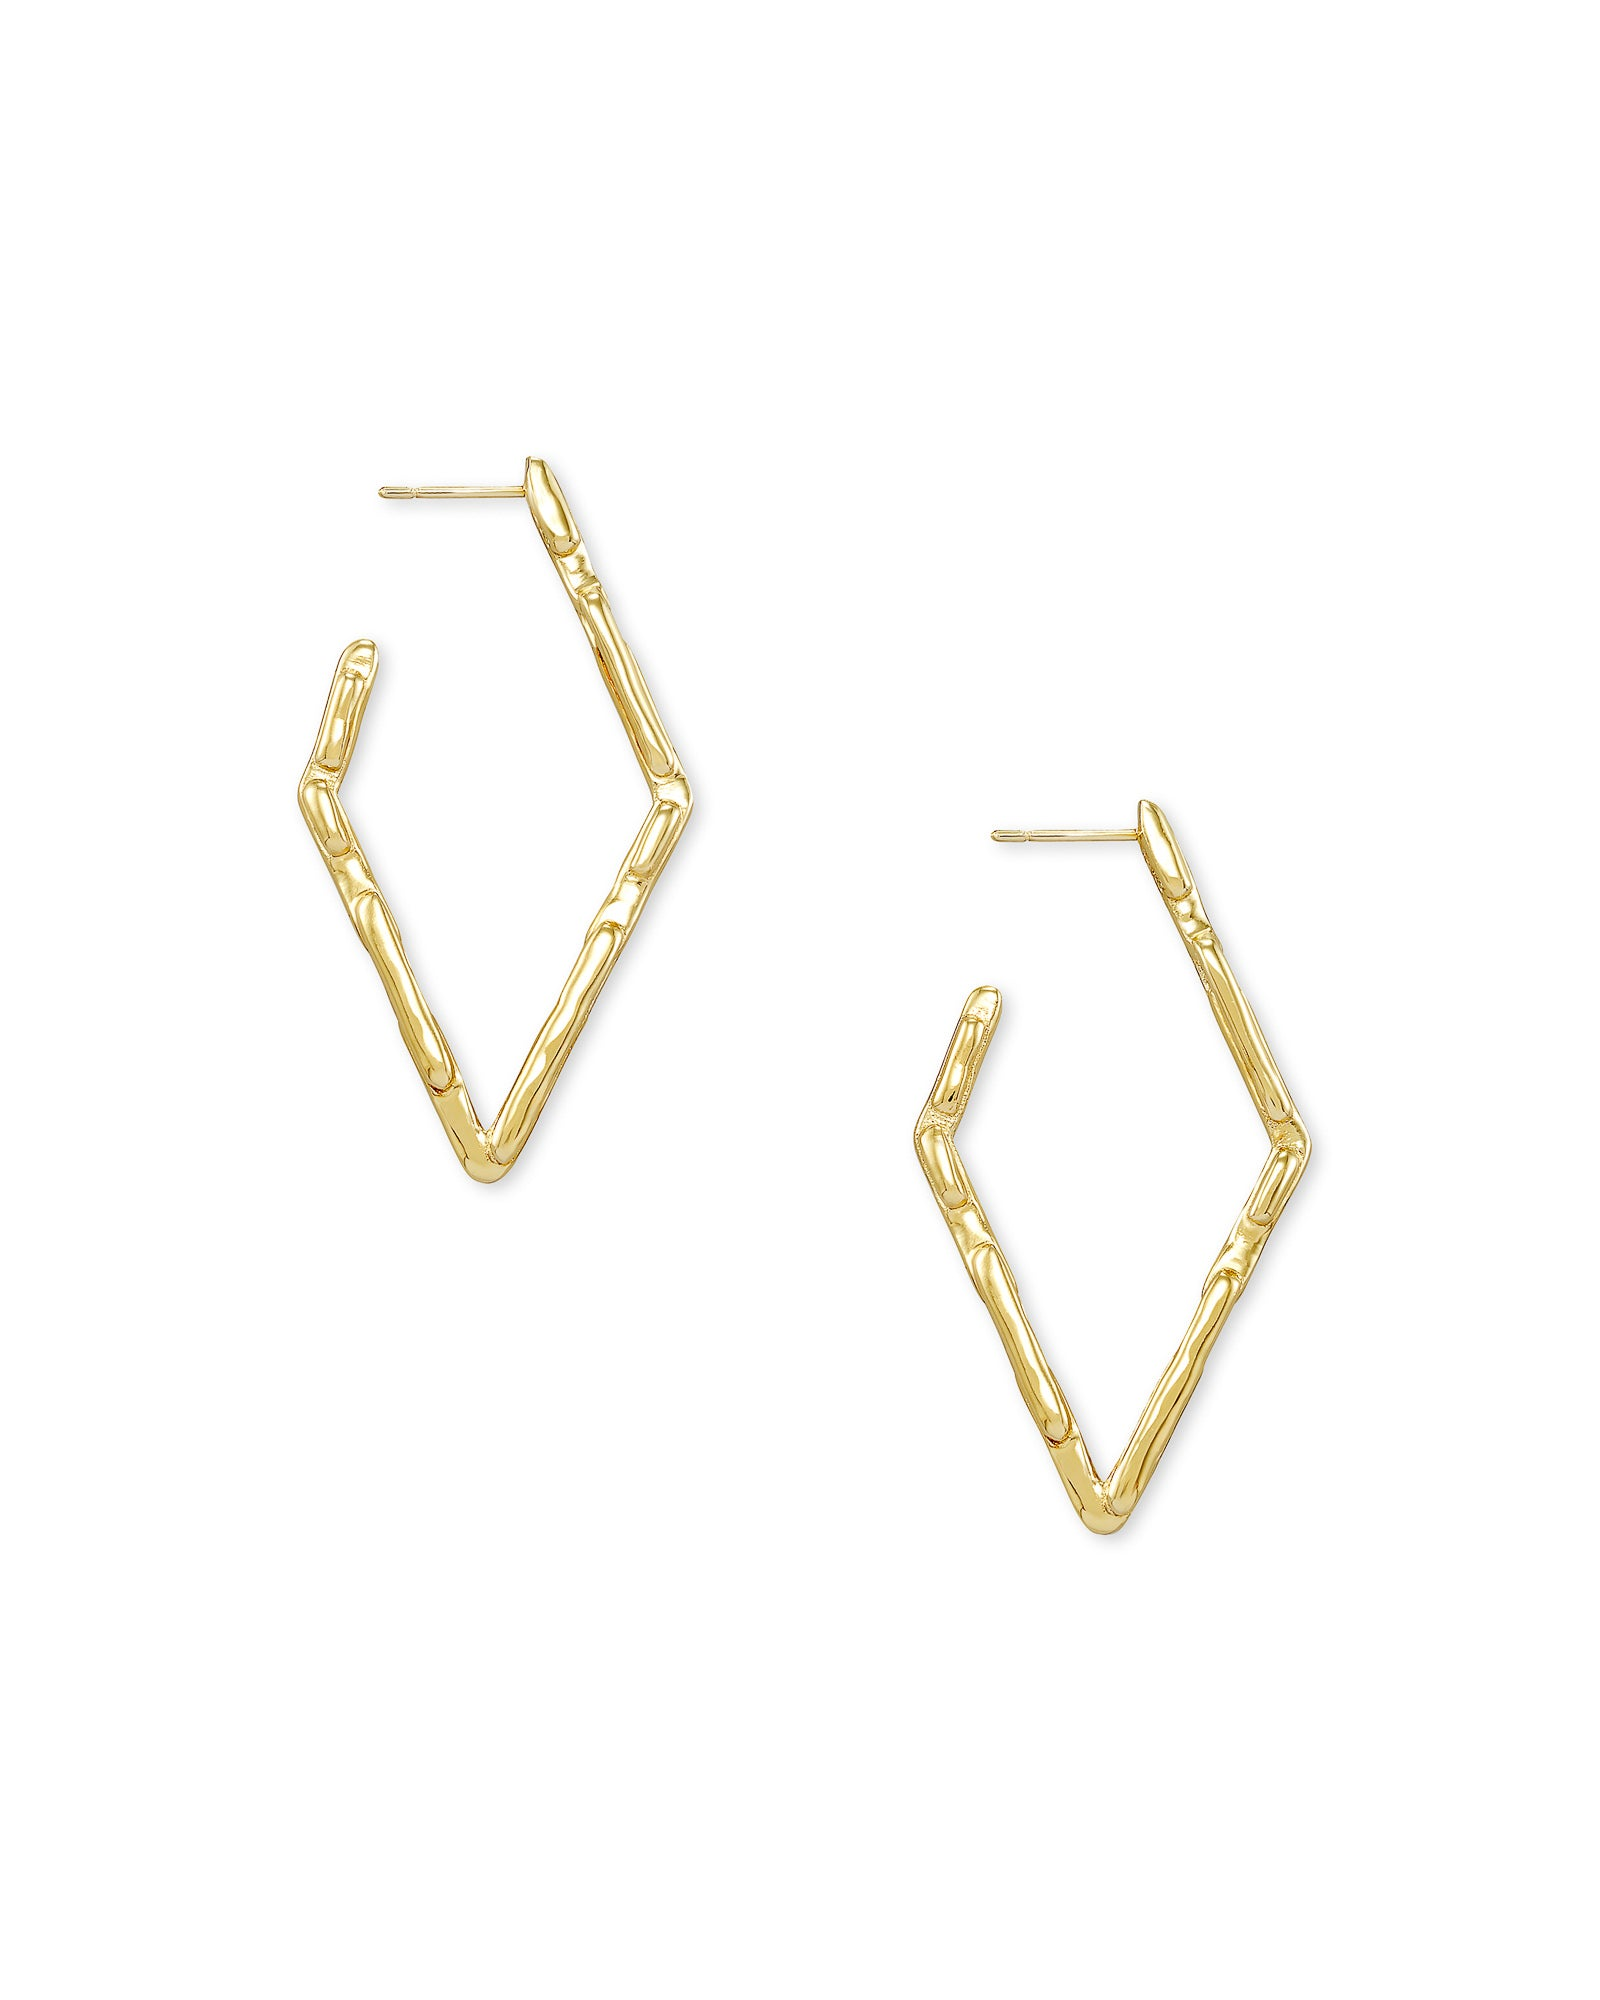 Rylan Small Hoop Earring in Gold Metal